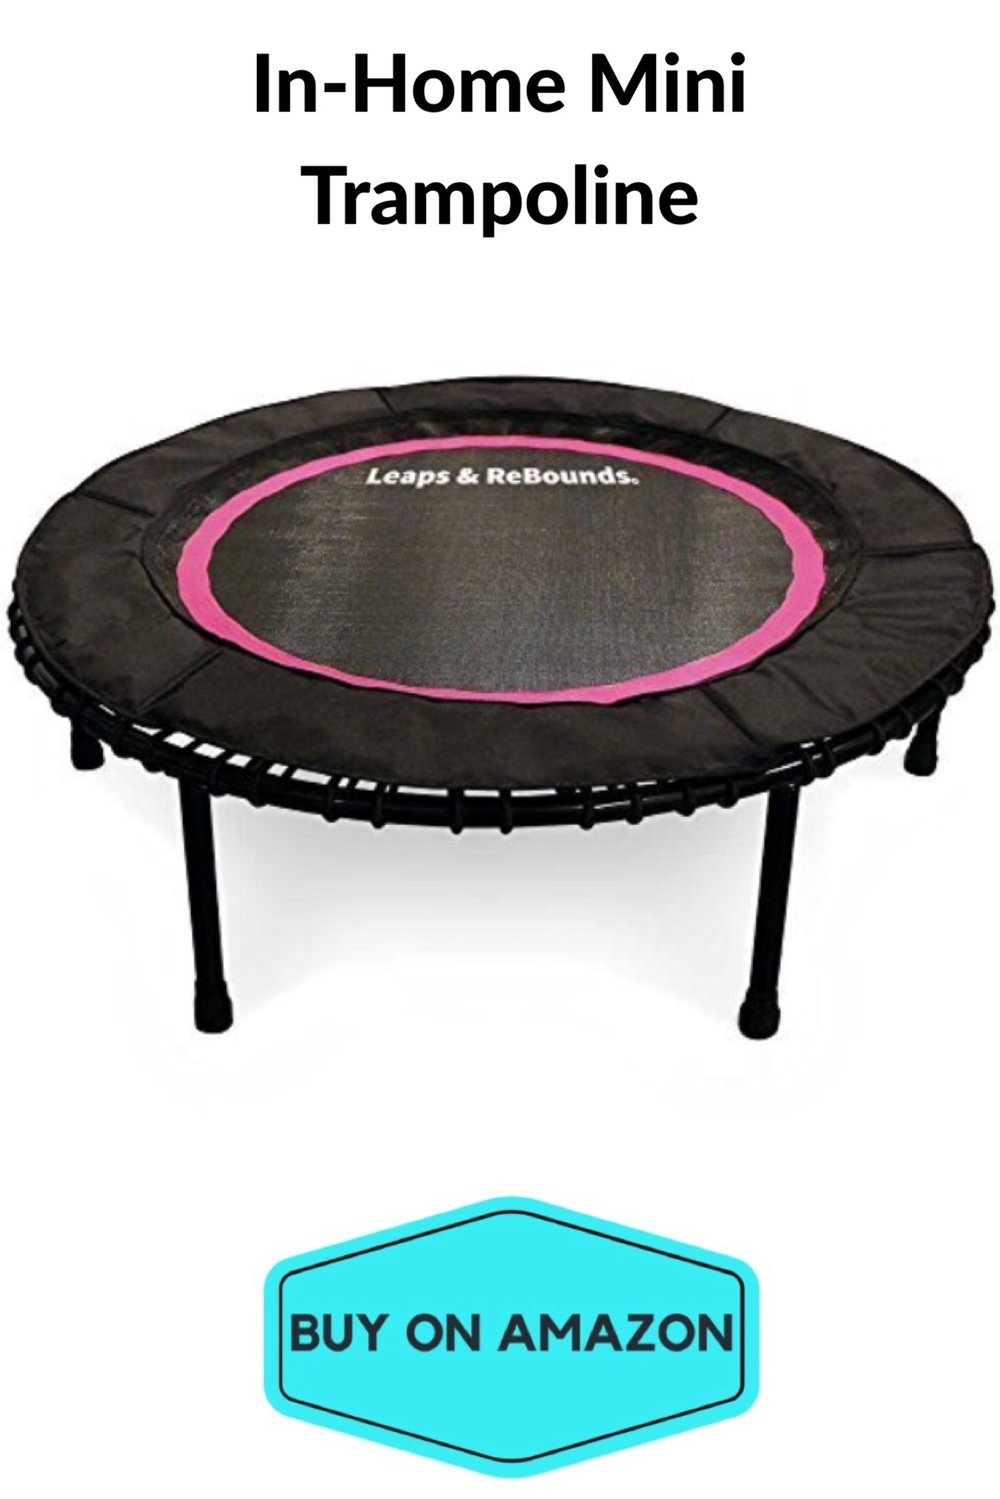 In-Home Mini Trampoline